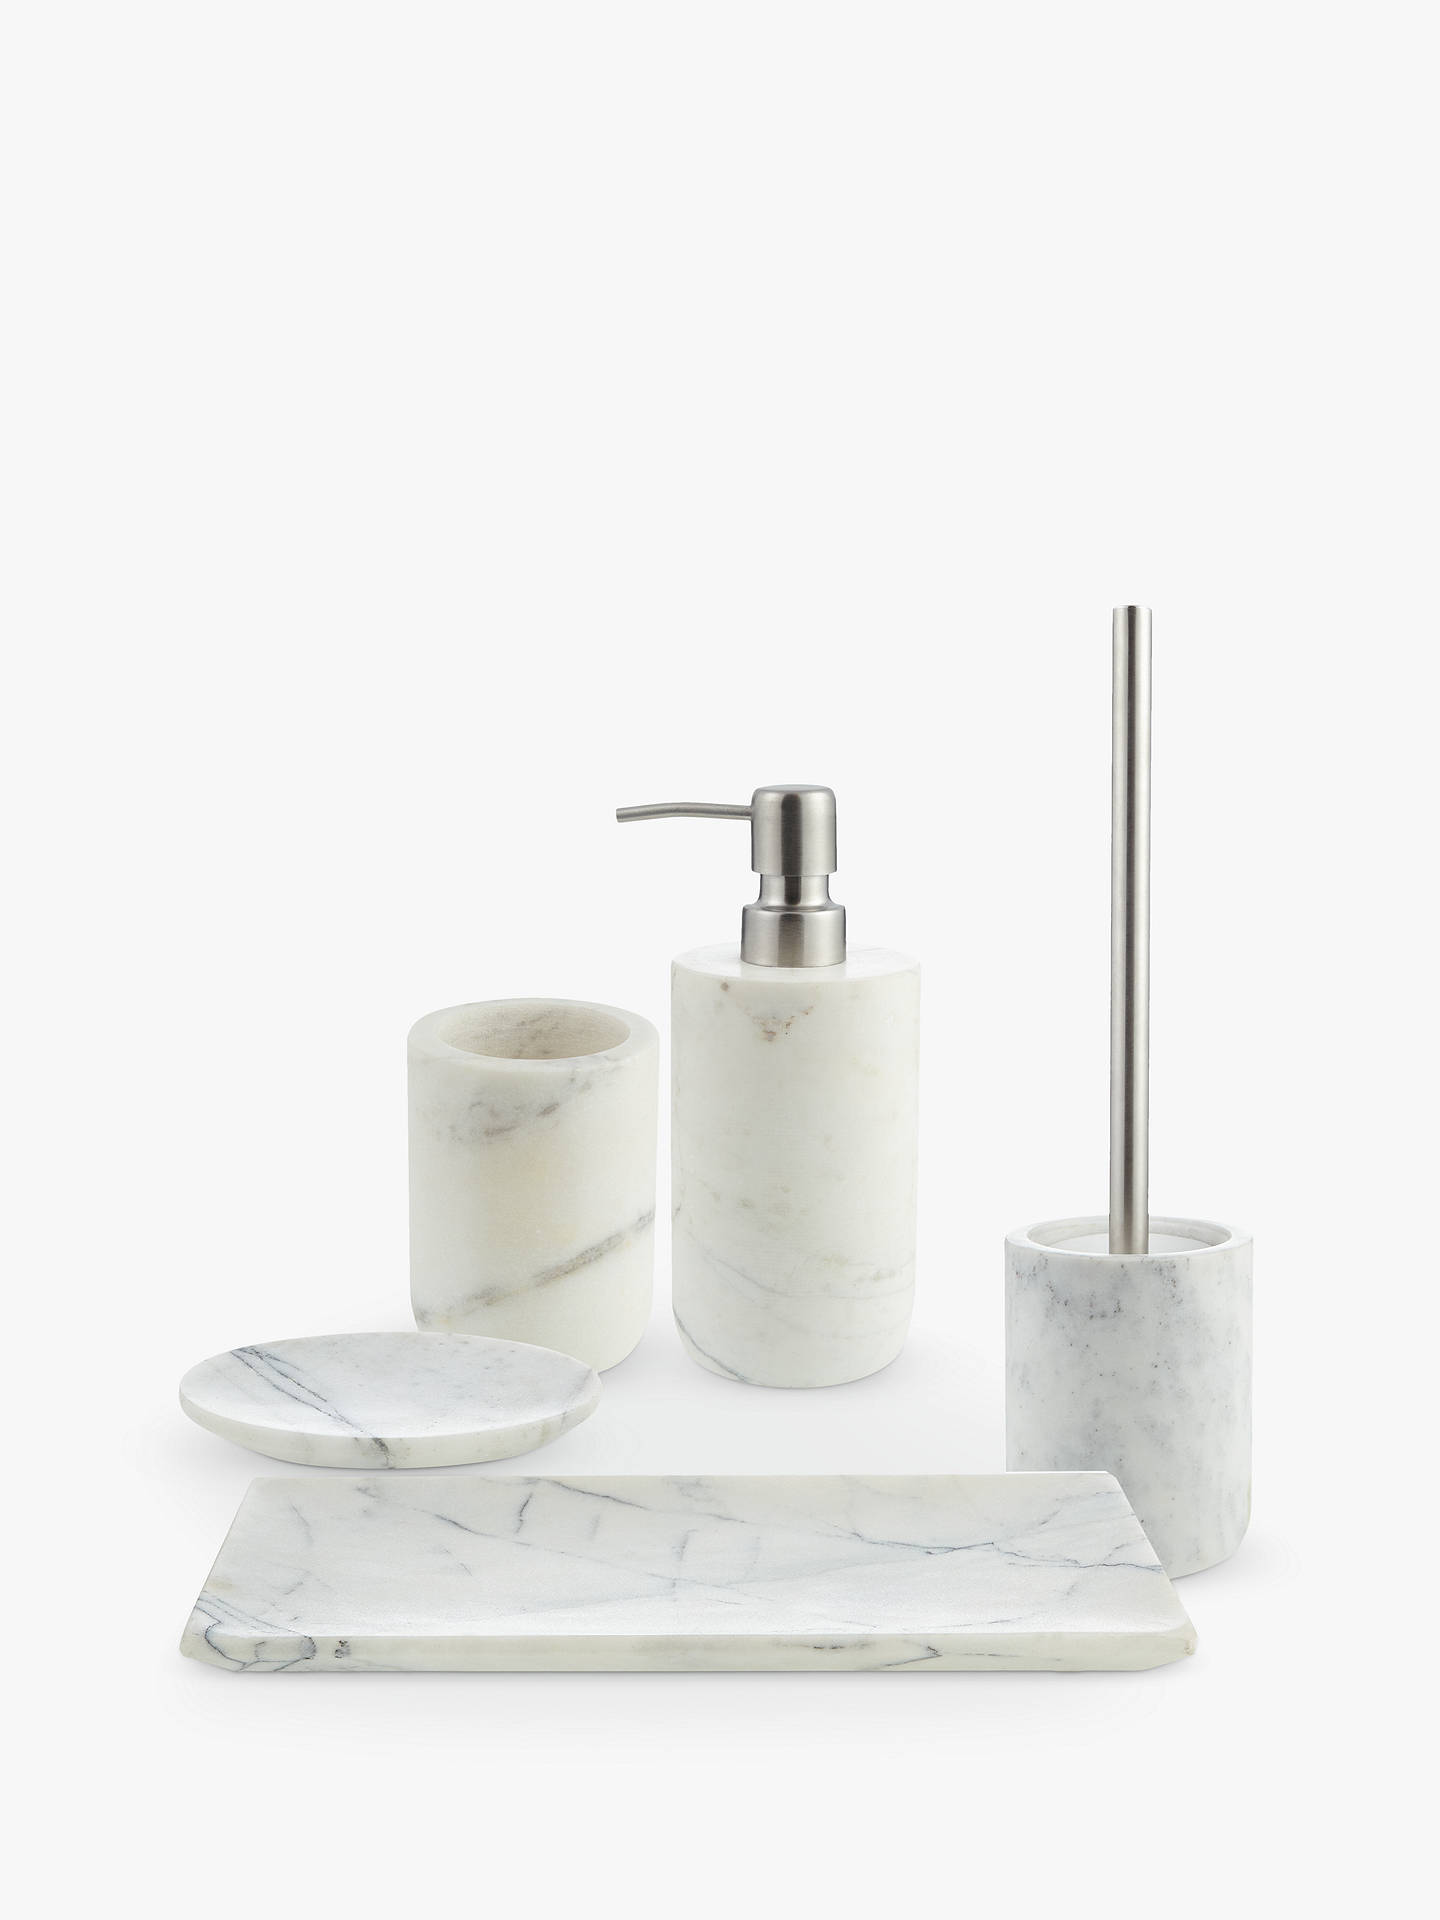 BuyJohn Lewis & Partners White Marble Bathroom Tumbler Online at johnlewis.com